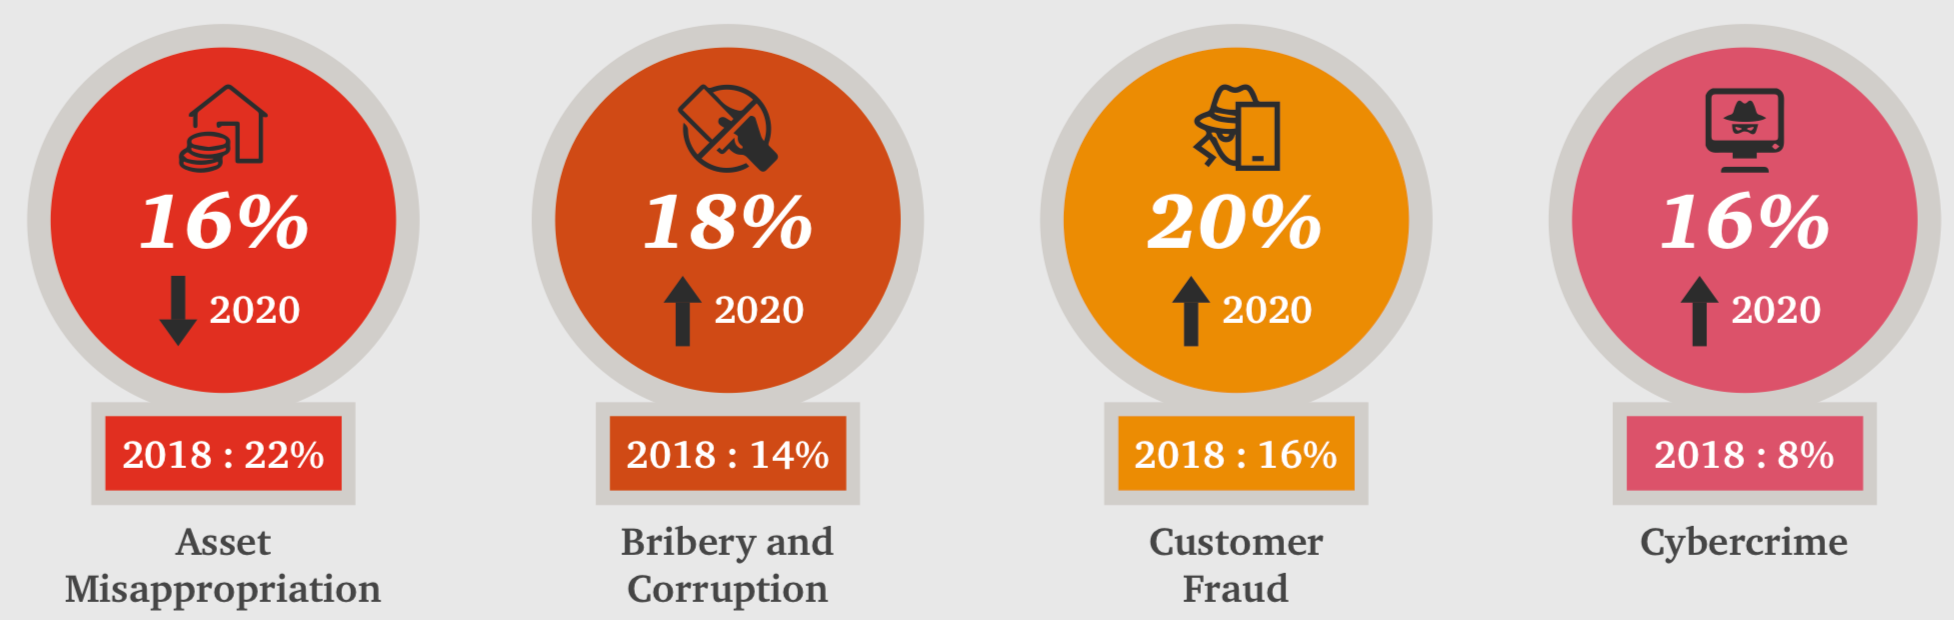 The four most disruptive forms of fraud in Malaysia in 2020